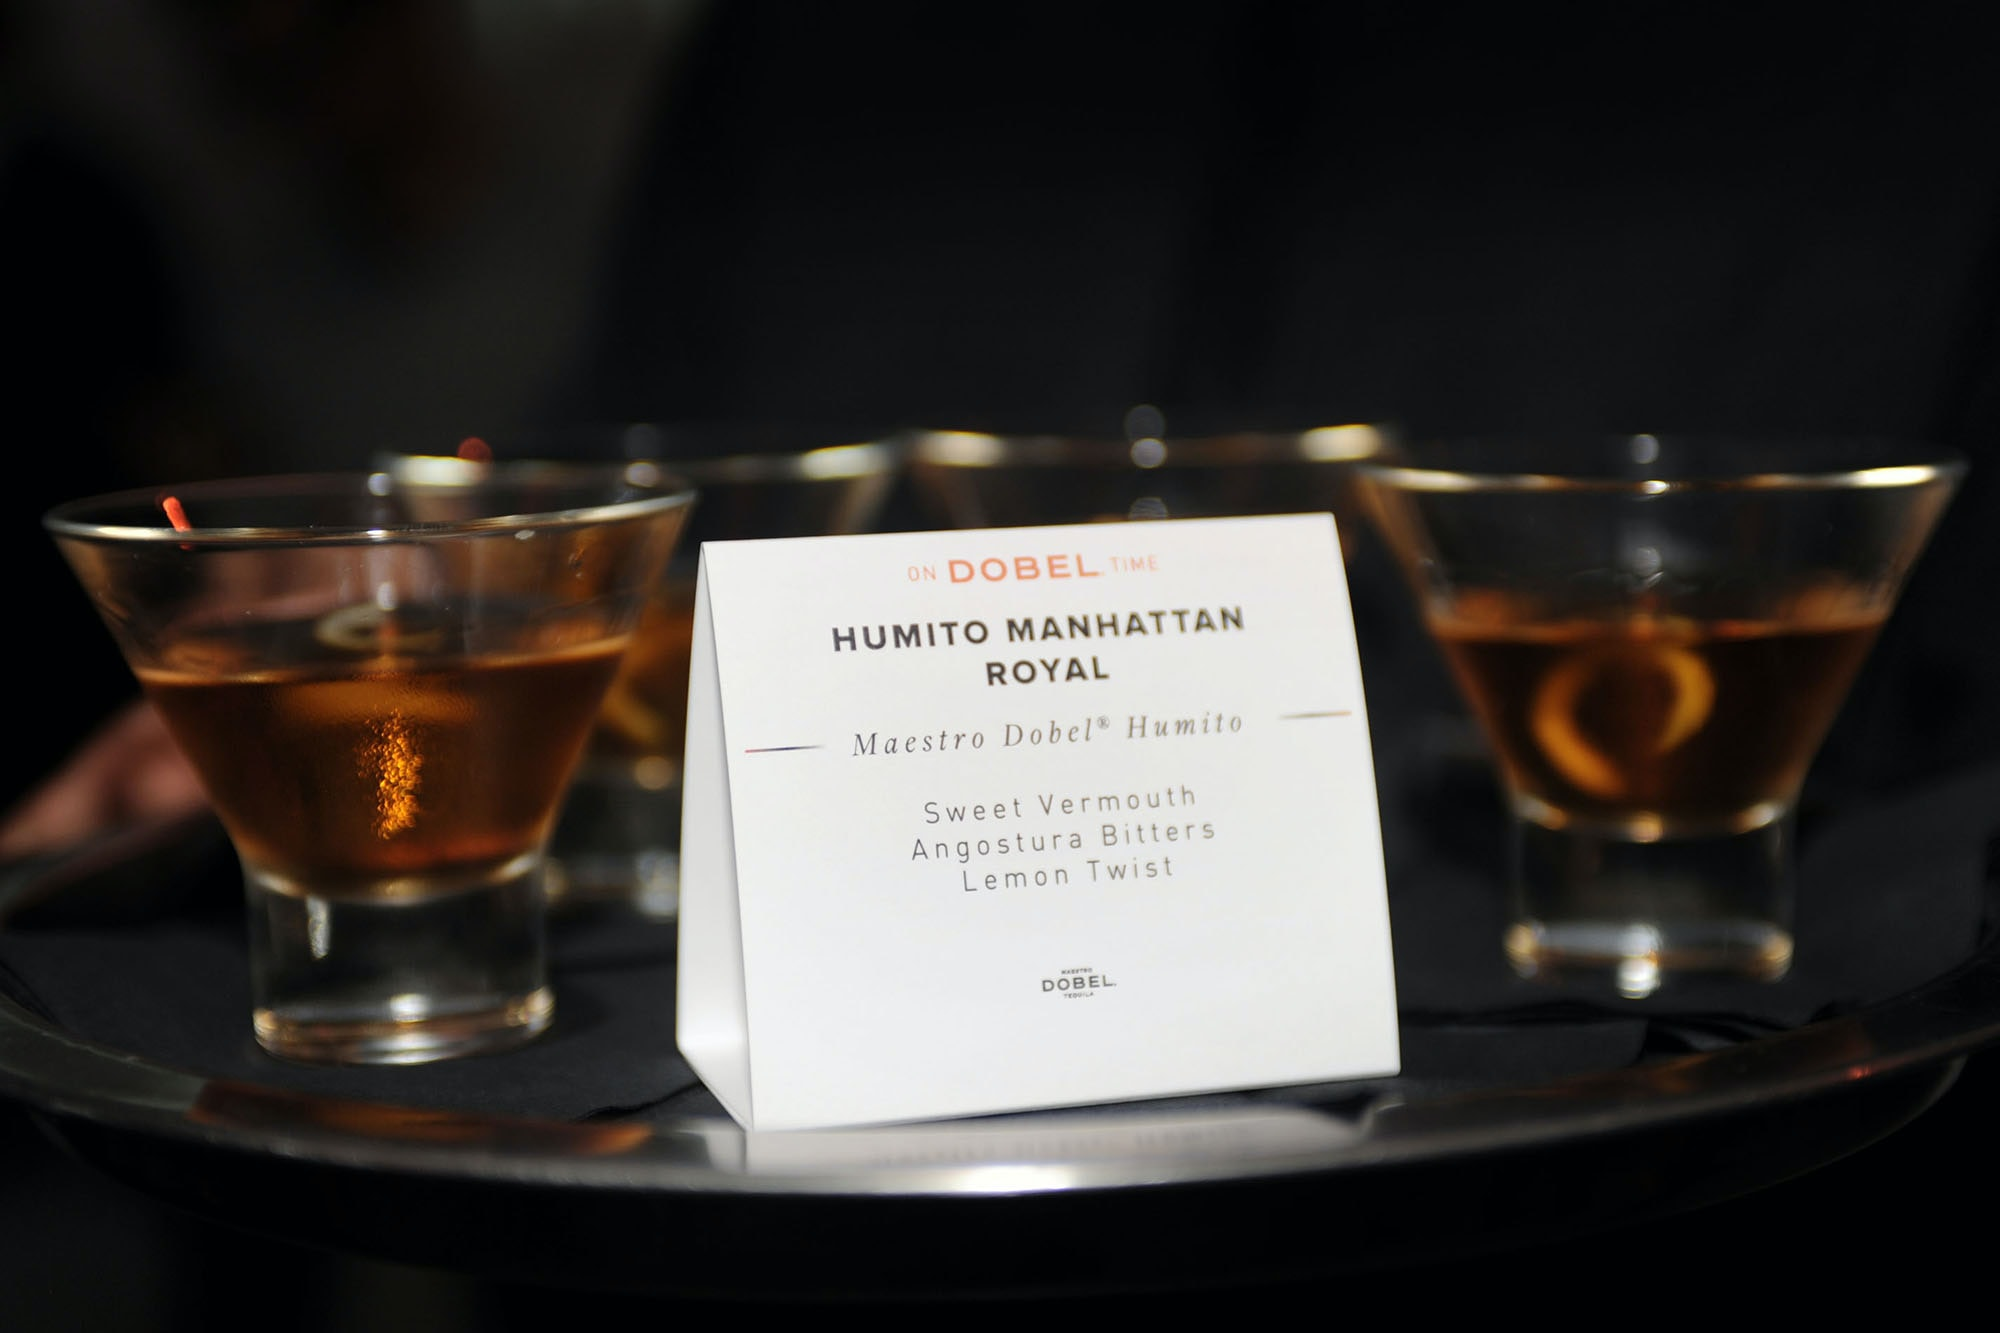 Photo Report: The Dobel x HODINKEE Events In New York And Miami – And An Invitation To Celebrate With Us In LA, Wednesday Night! Photo Report: The Dobel x HODINKEE Events In New York And Miami – And An Invitation To Celebrate With Us In LA, Wednesday Night! Humito Manhattan Royal 1